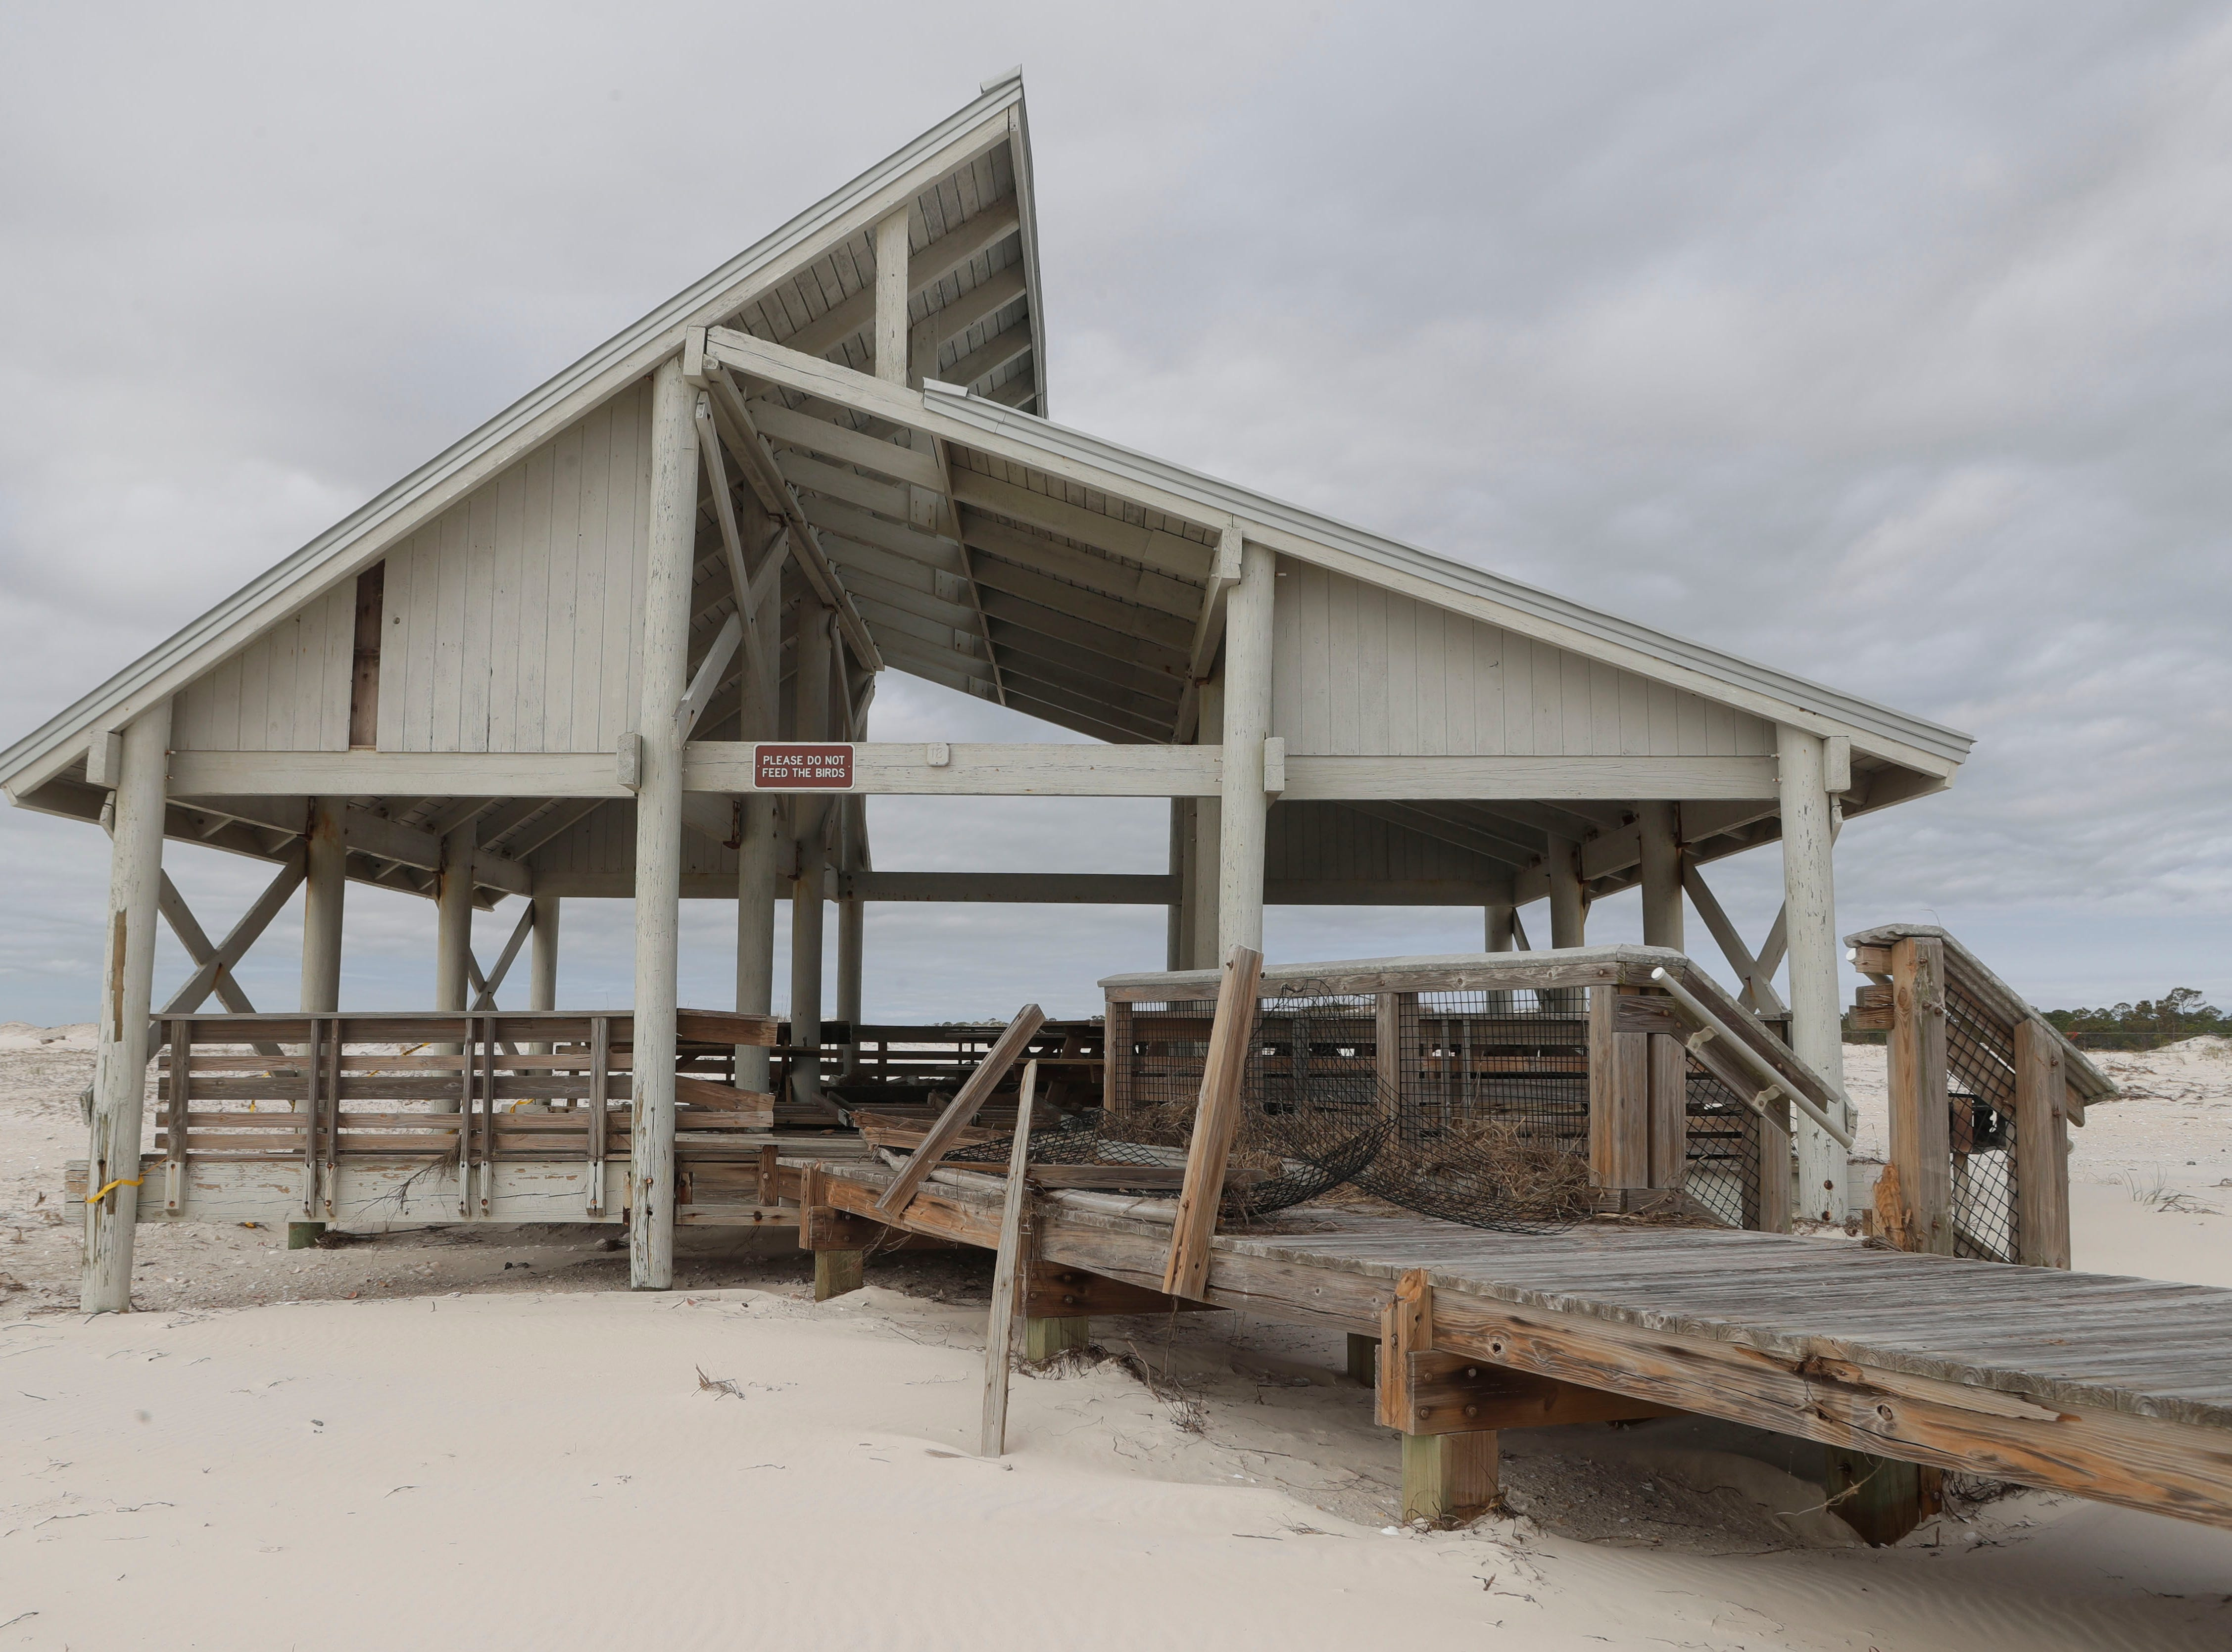 A pavilion on the beach in St. George Island State Park, Tuesday Feb. 19, 2019. The pavilion was torn apart during Hurricane Michael in Oct. 2018.